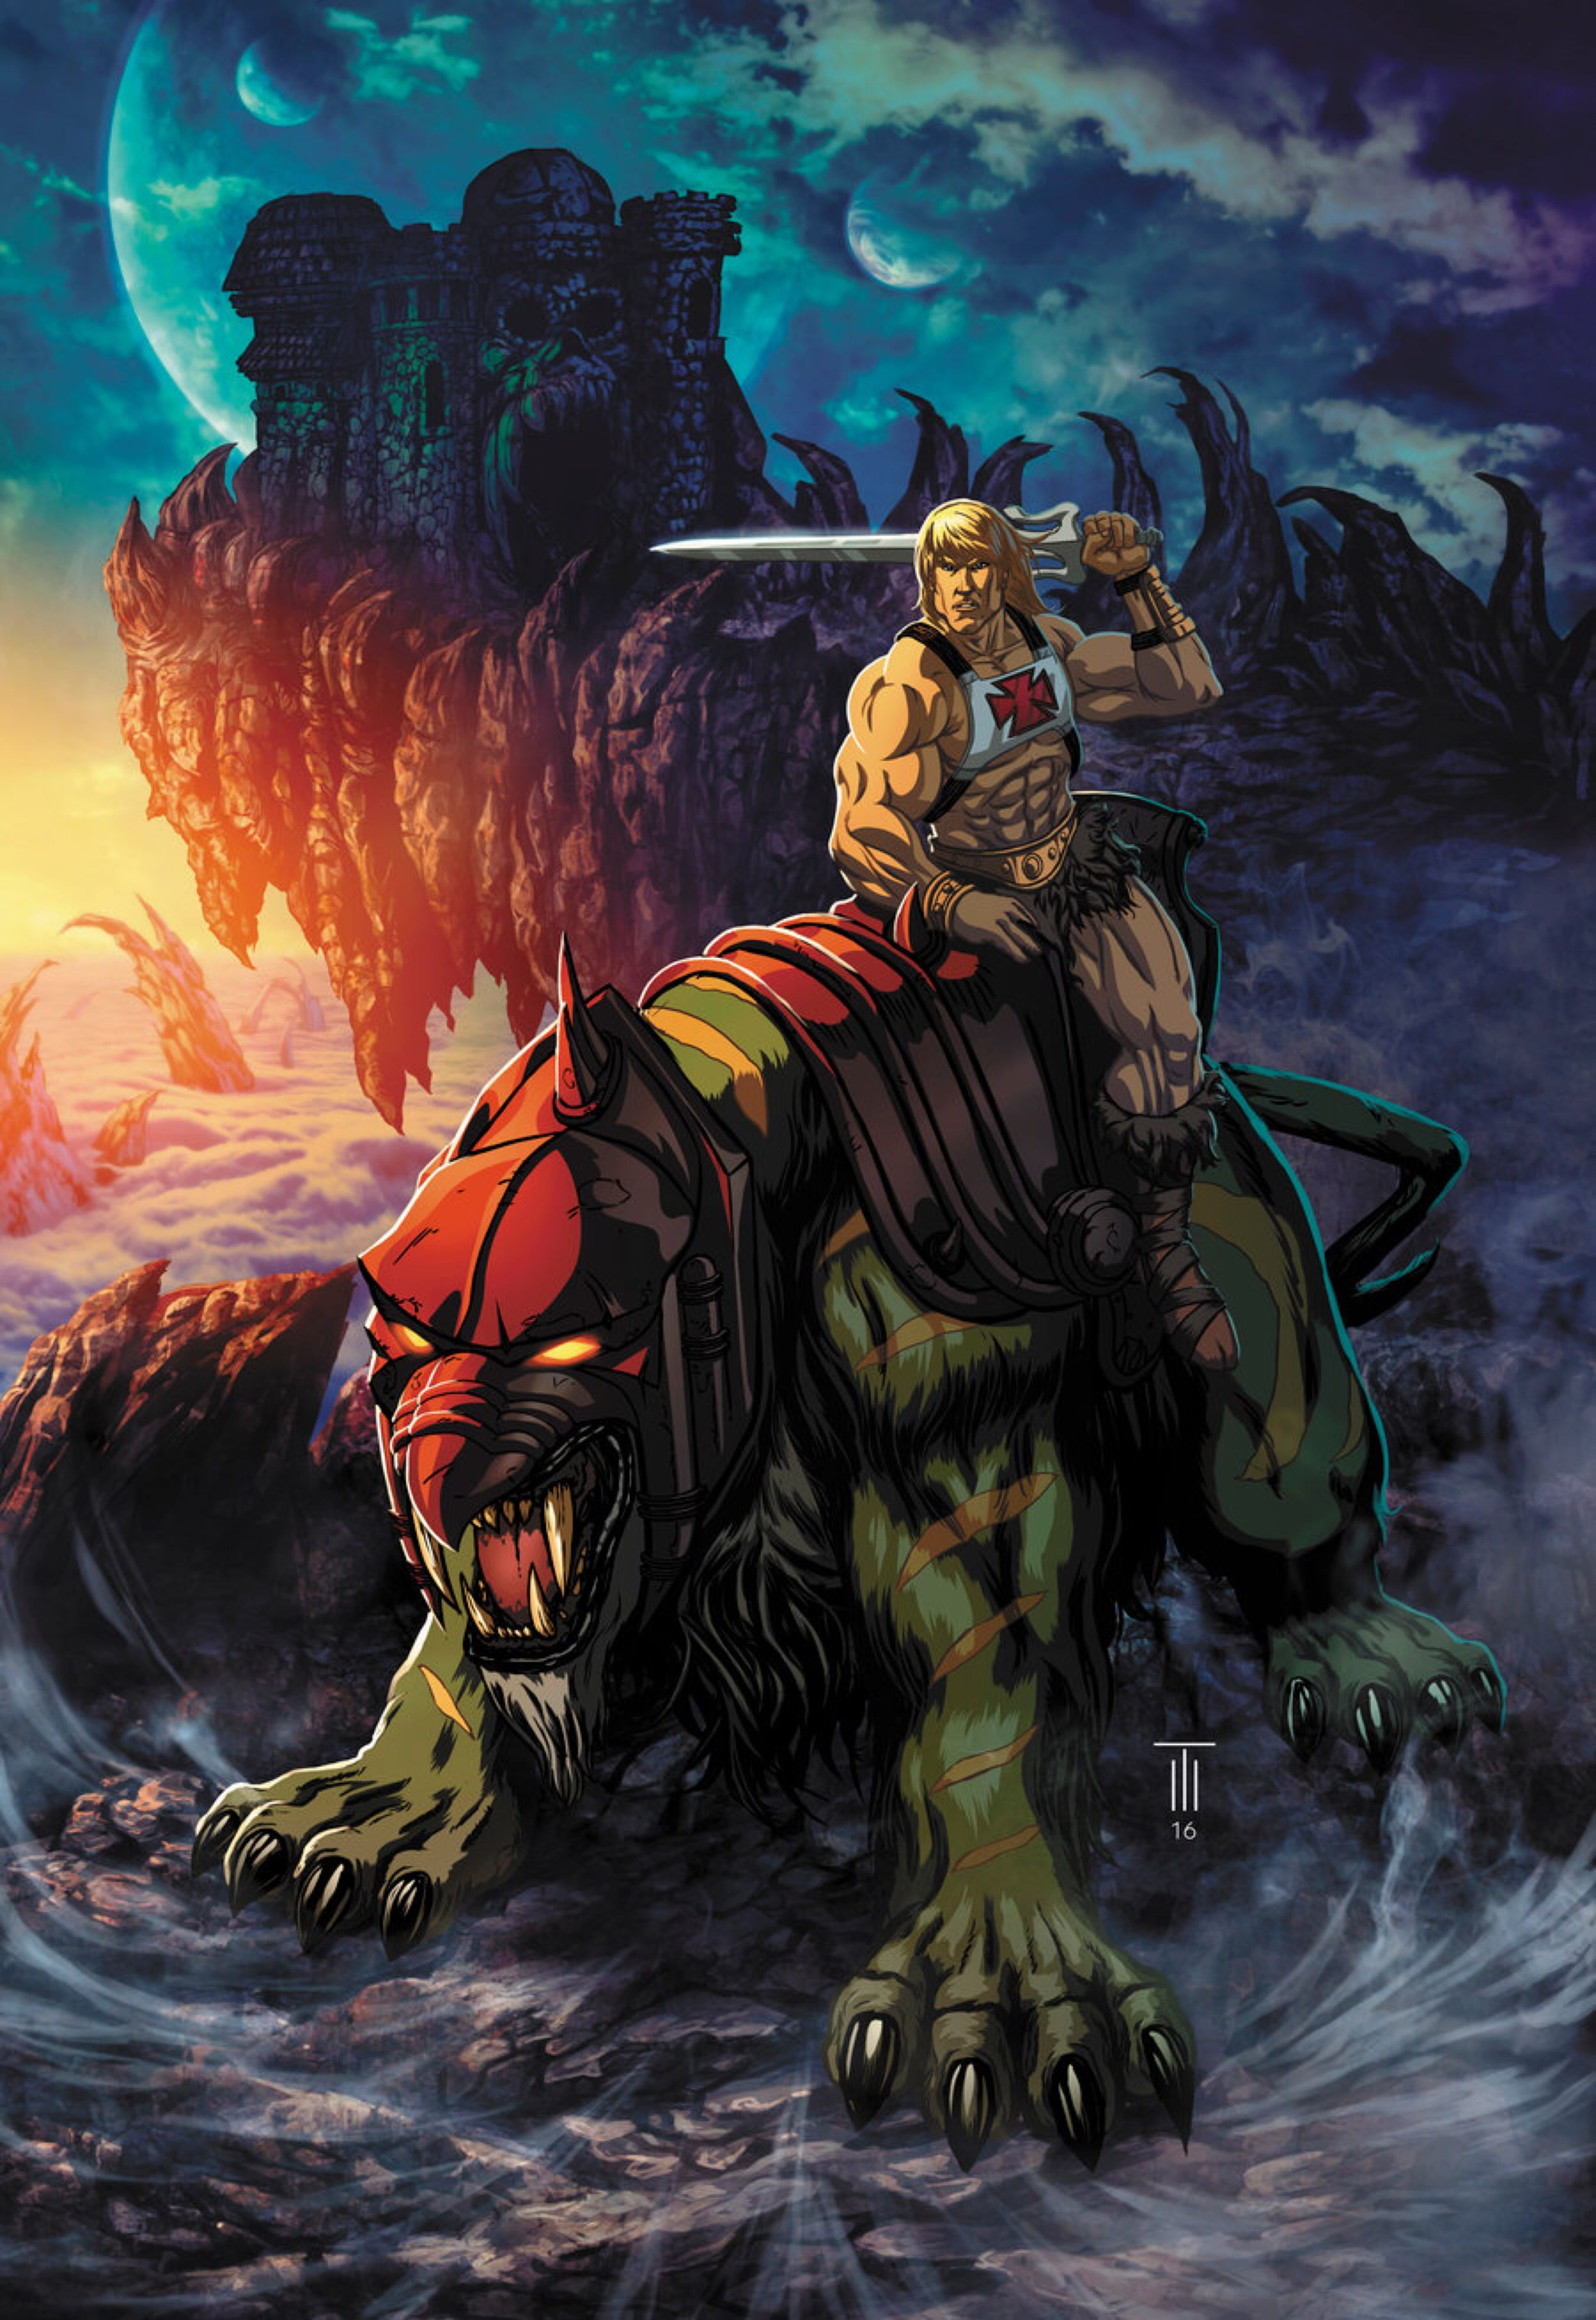 Adult Cd Universe he-man and battle cat: powercon 2016 - masters of the